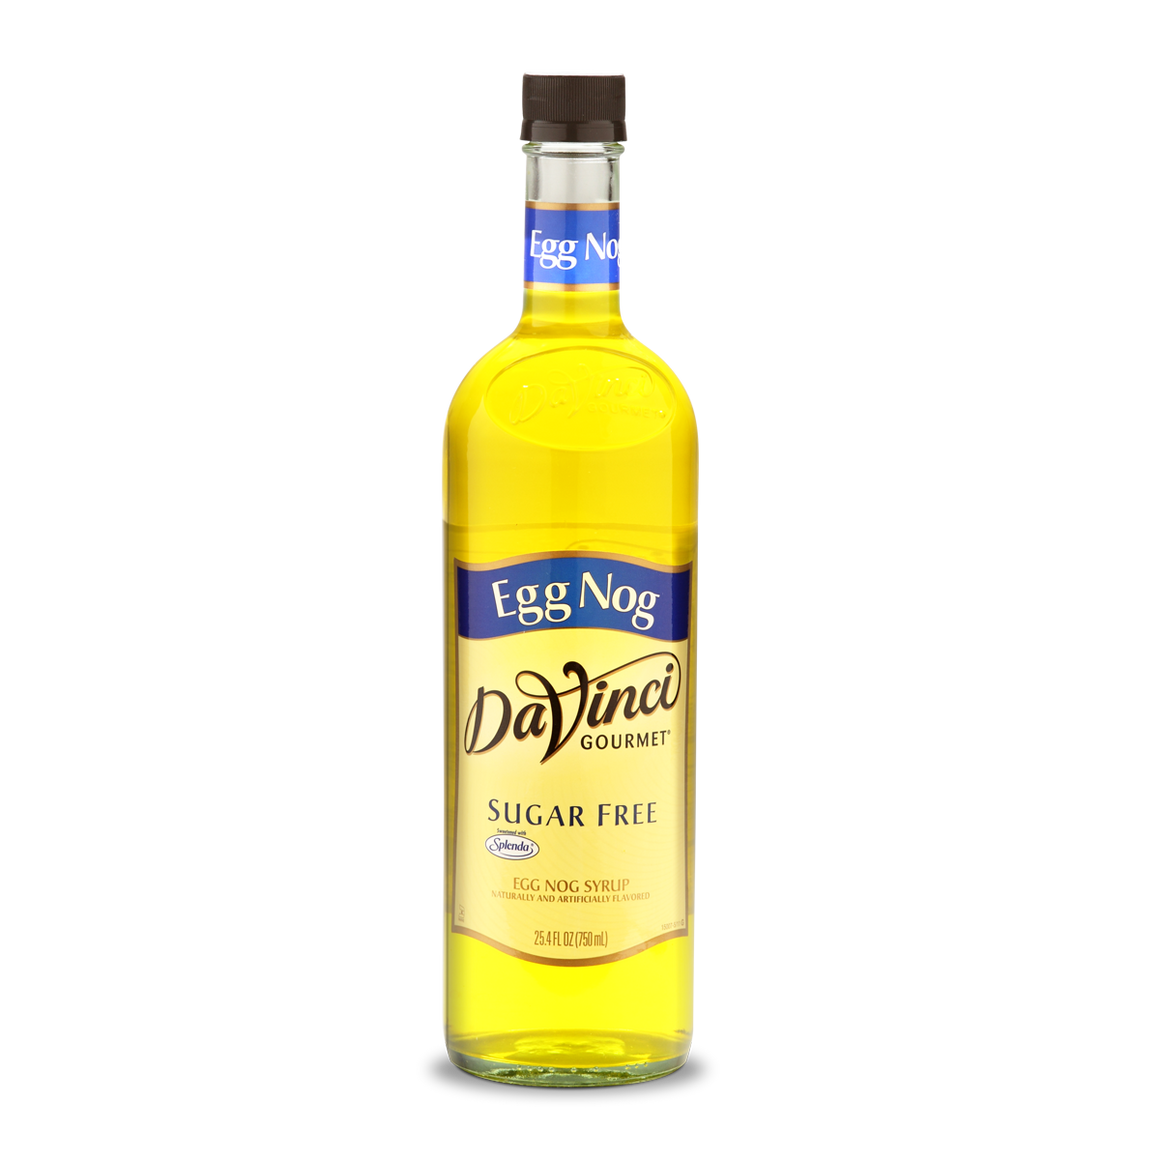 DaVinci - Sugar Free Syrup - Egg Nog - 25.4 fl oz Bottle